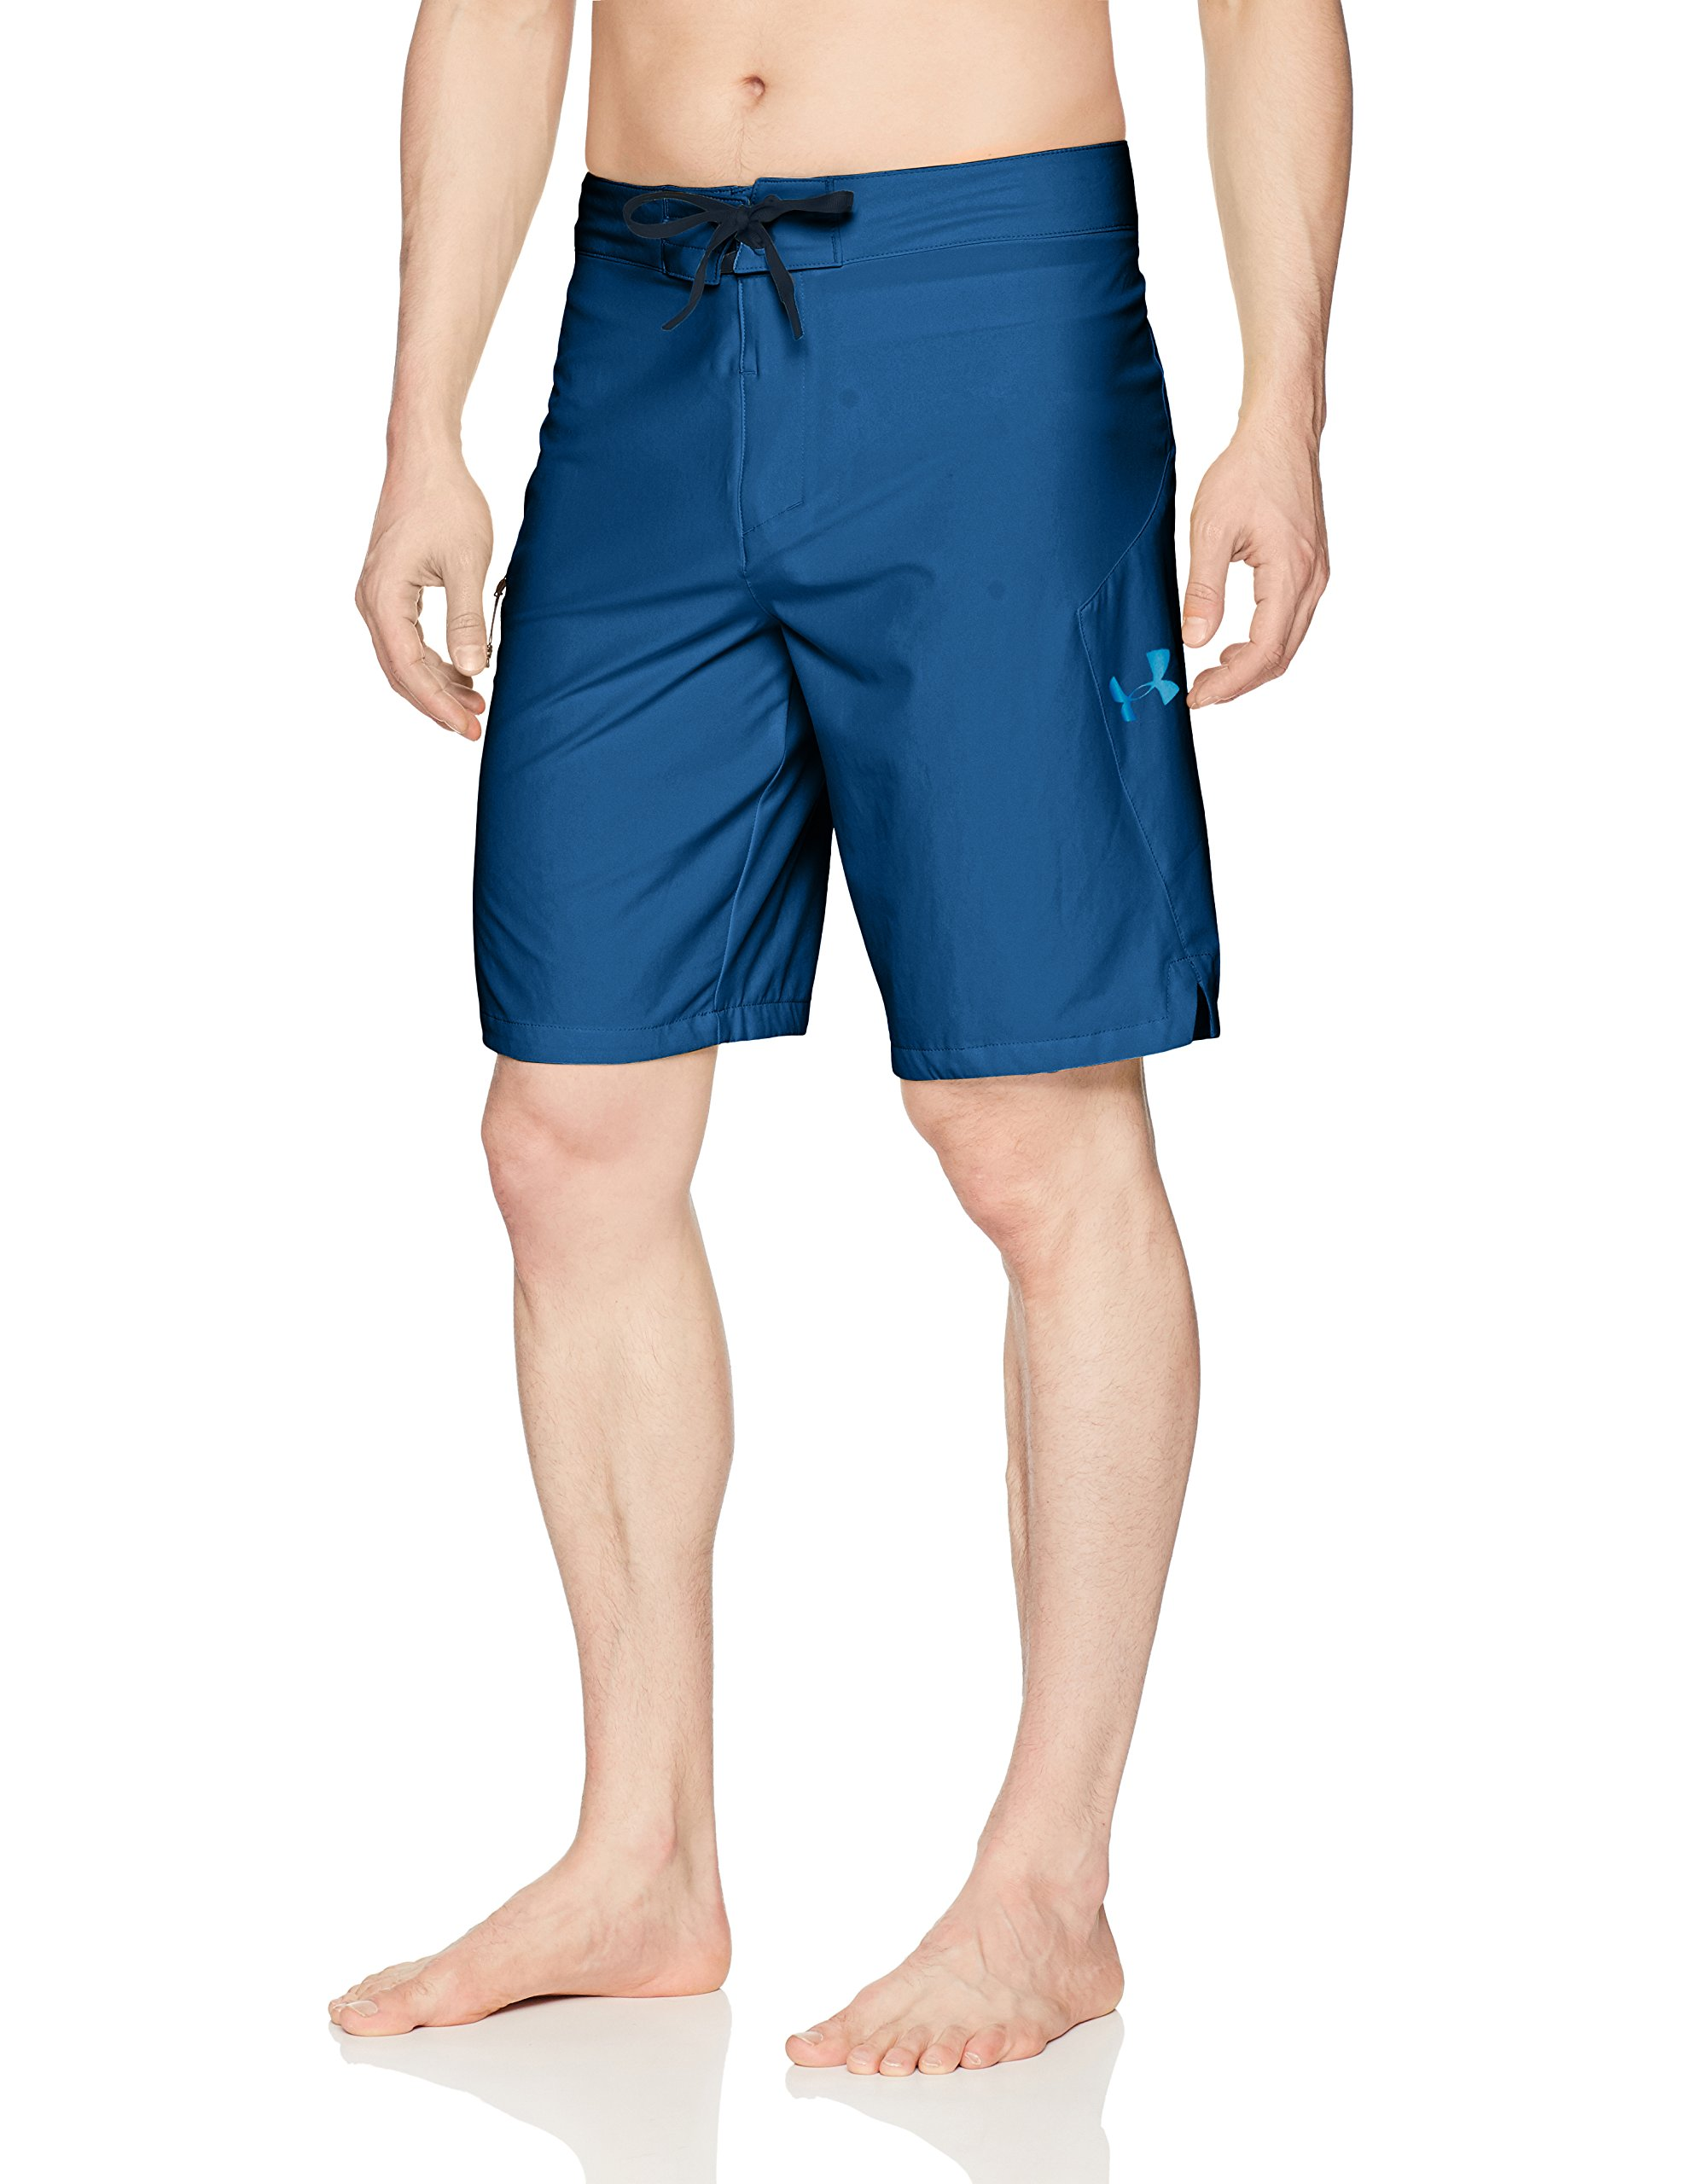 Under Armour Mens Stretch Boardshorts, Moroccan